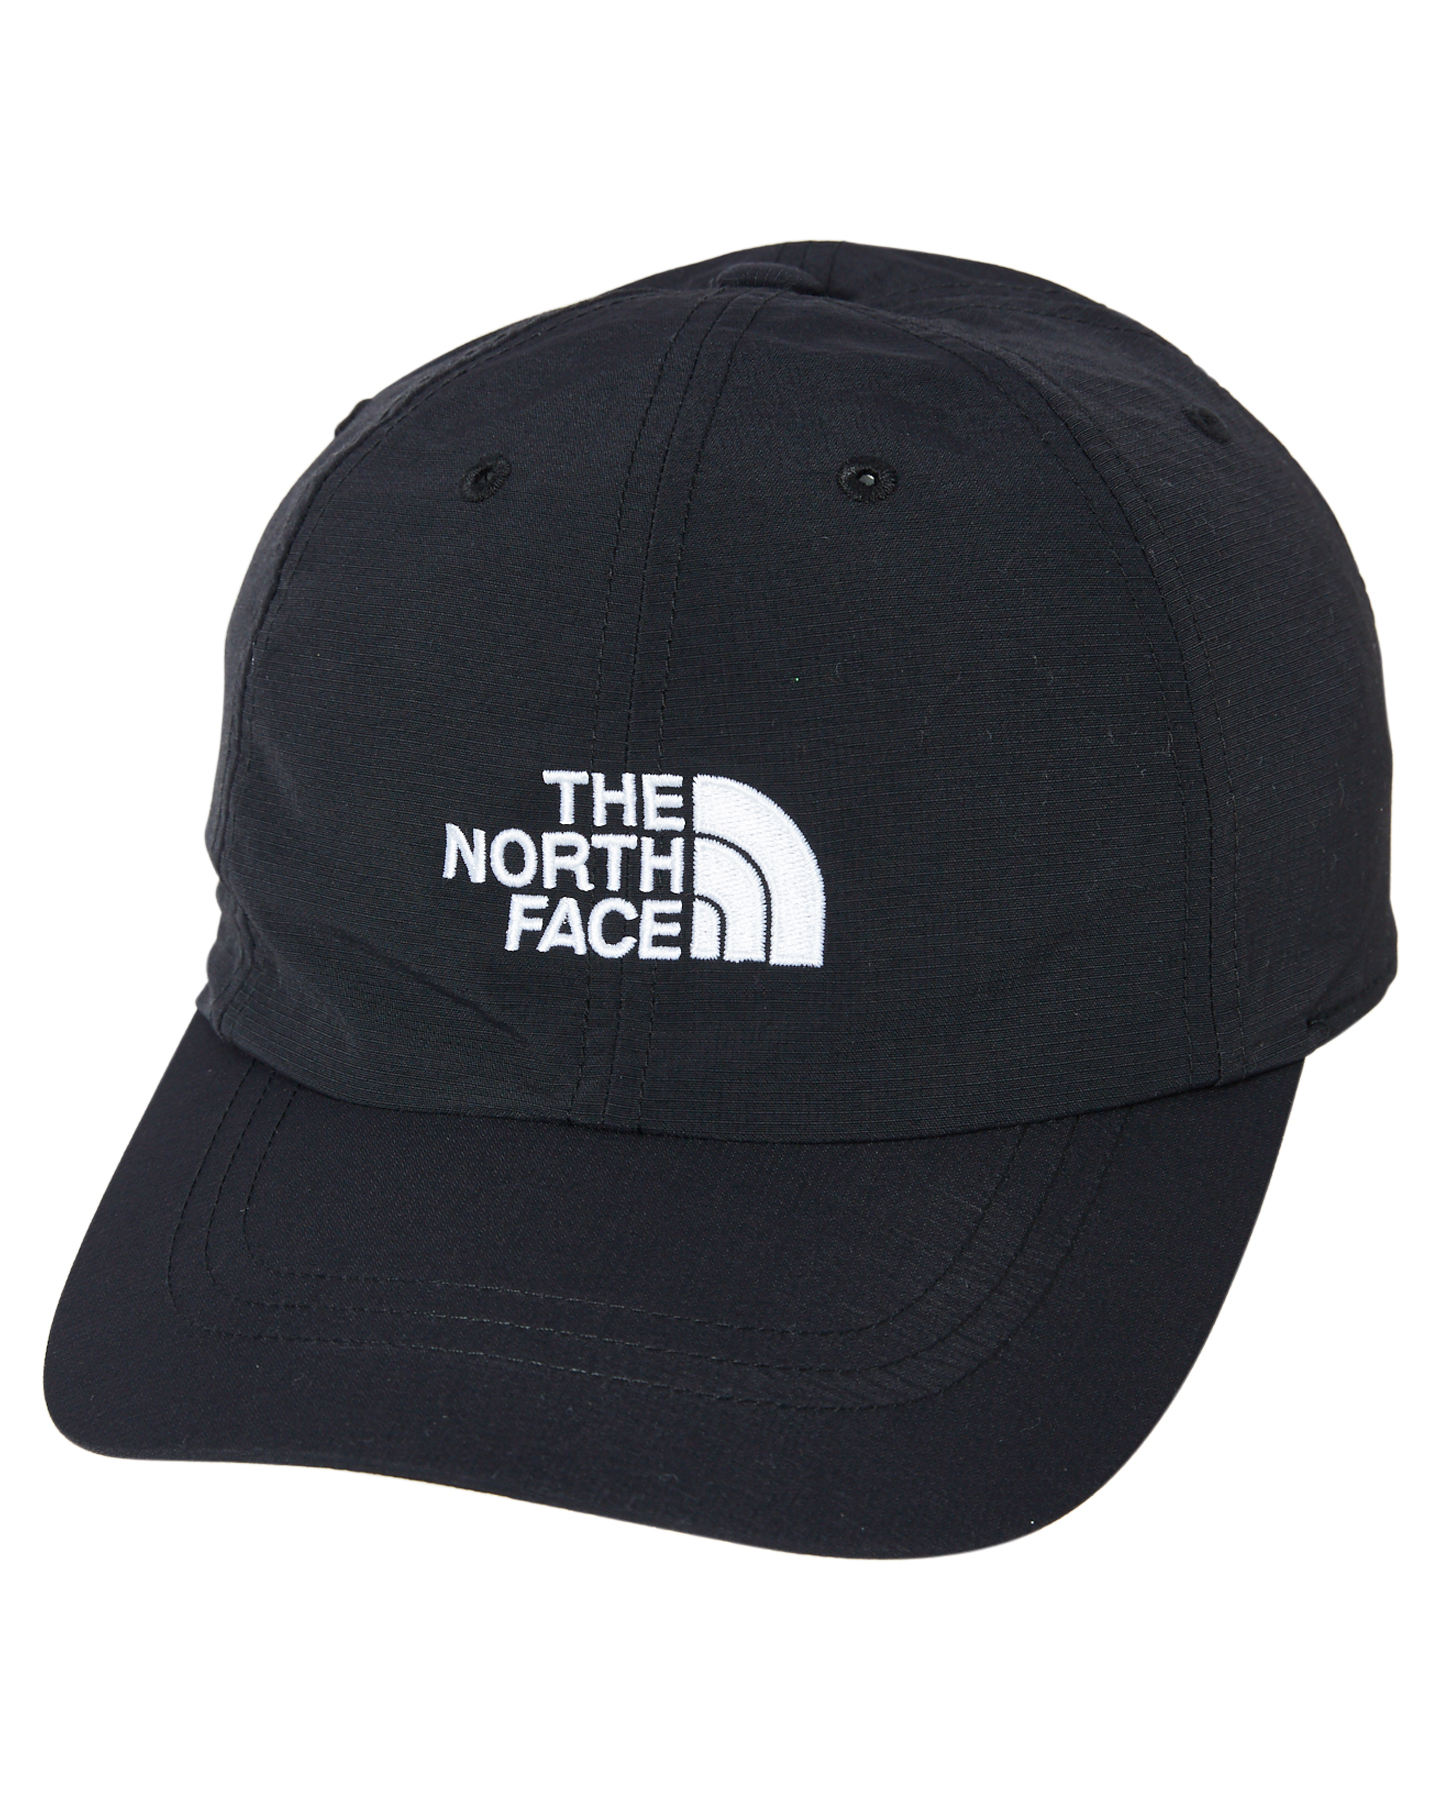 The North Face Horizon Snapback Cap Black White